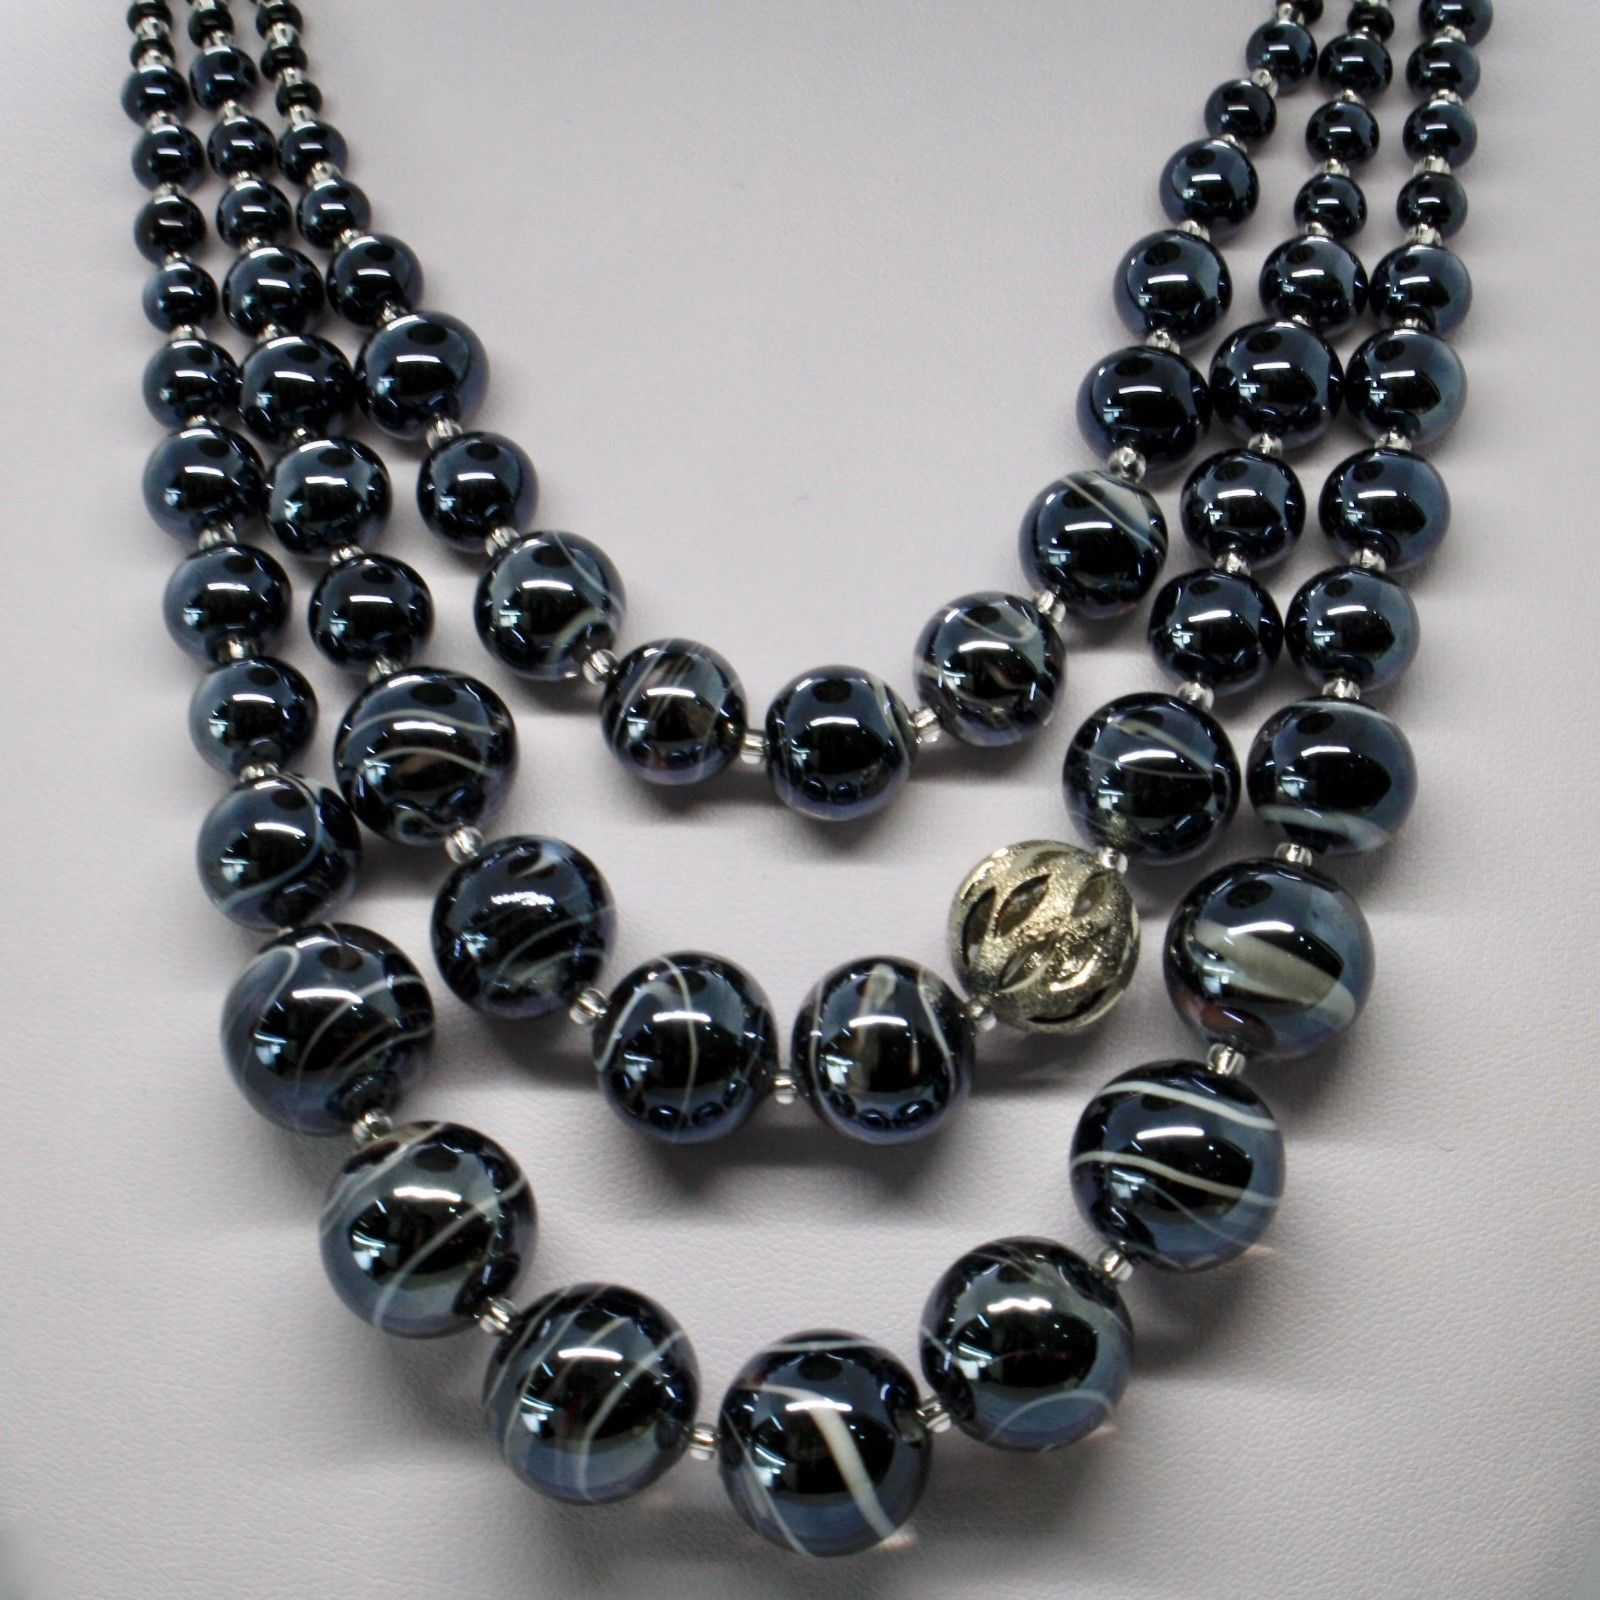 NECKLACE 3 FILI ANTICA MURRINA VENEZIA WITH MURANO GLASS BLACK GREY CO886A14